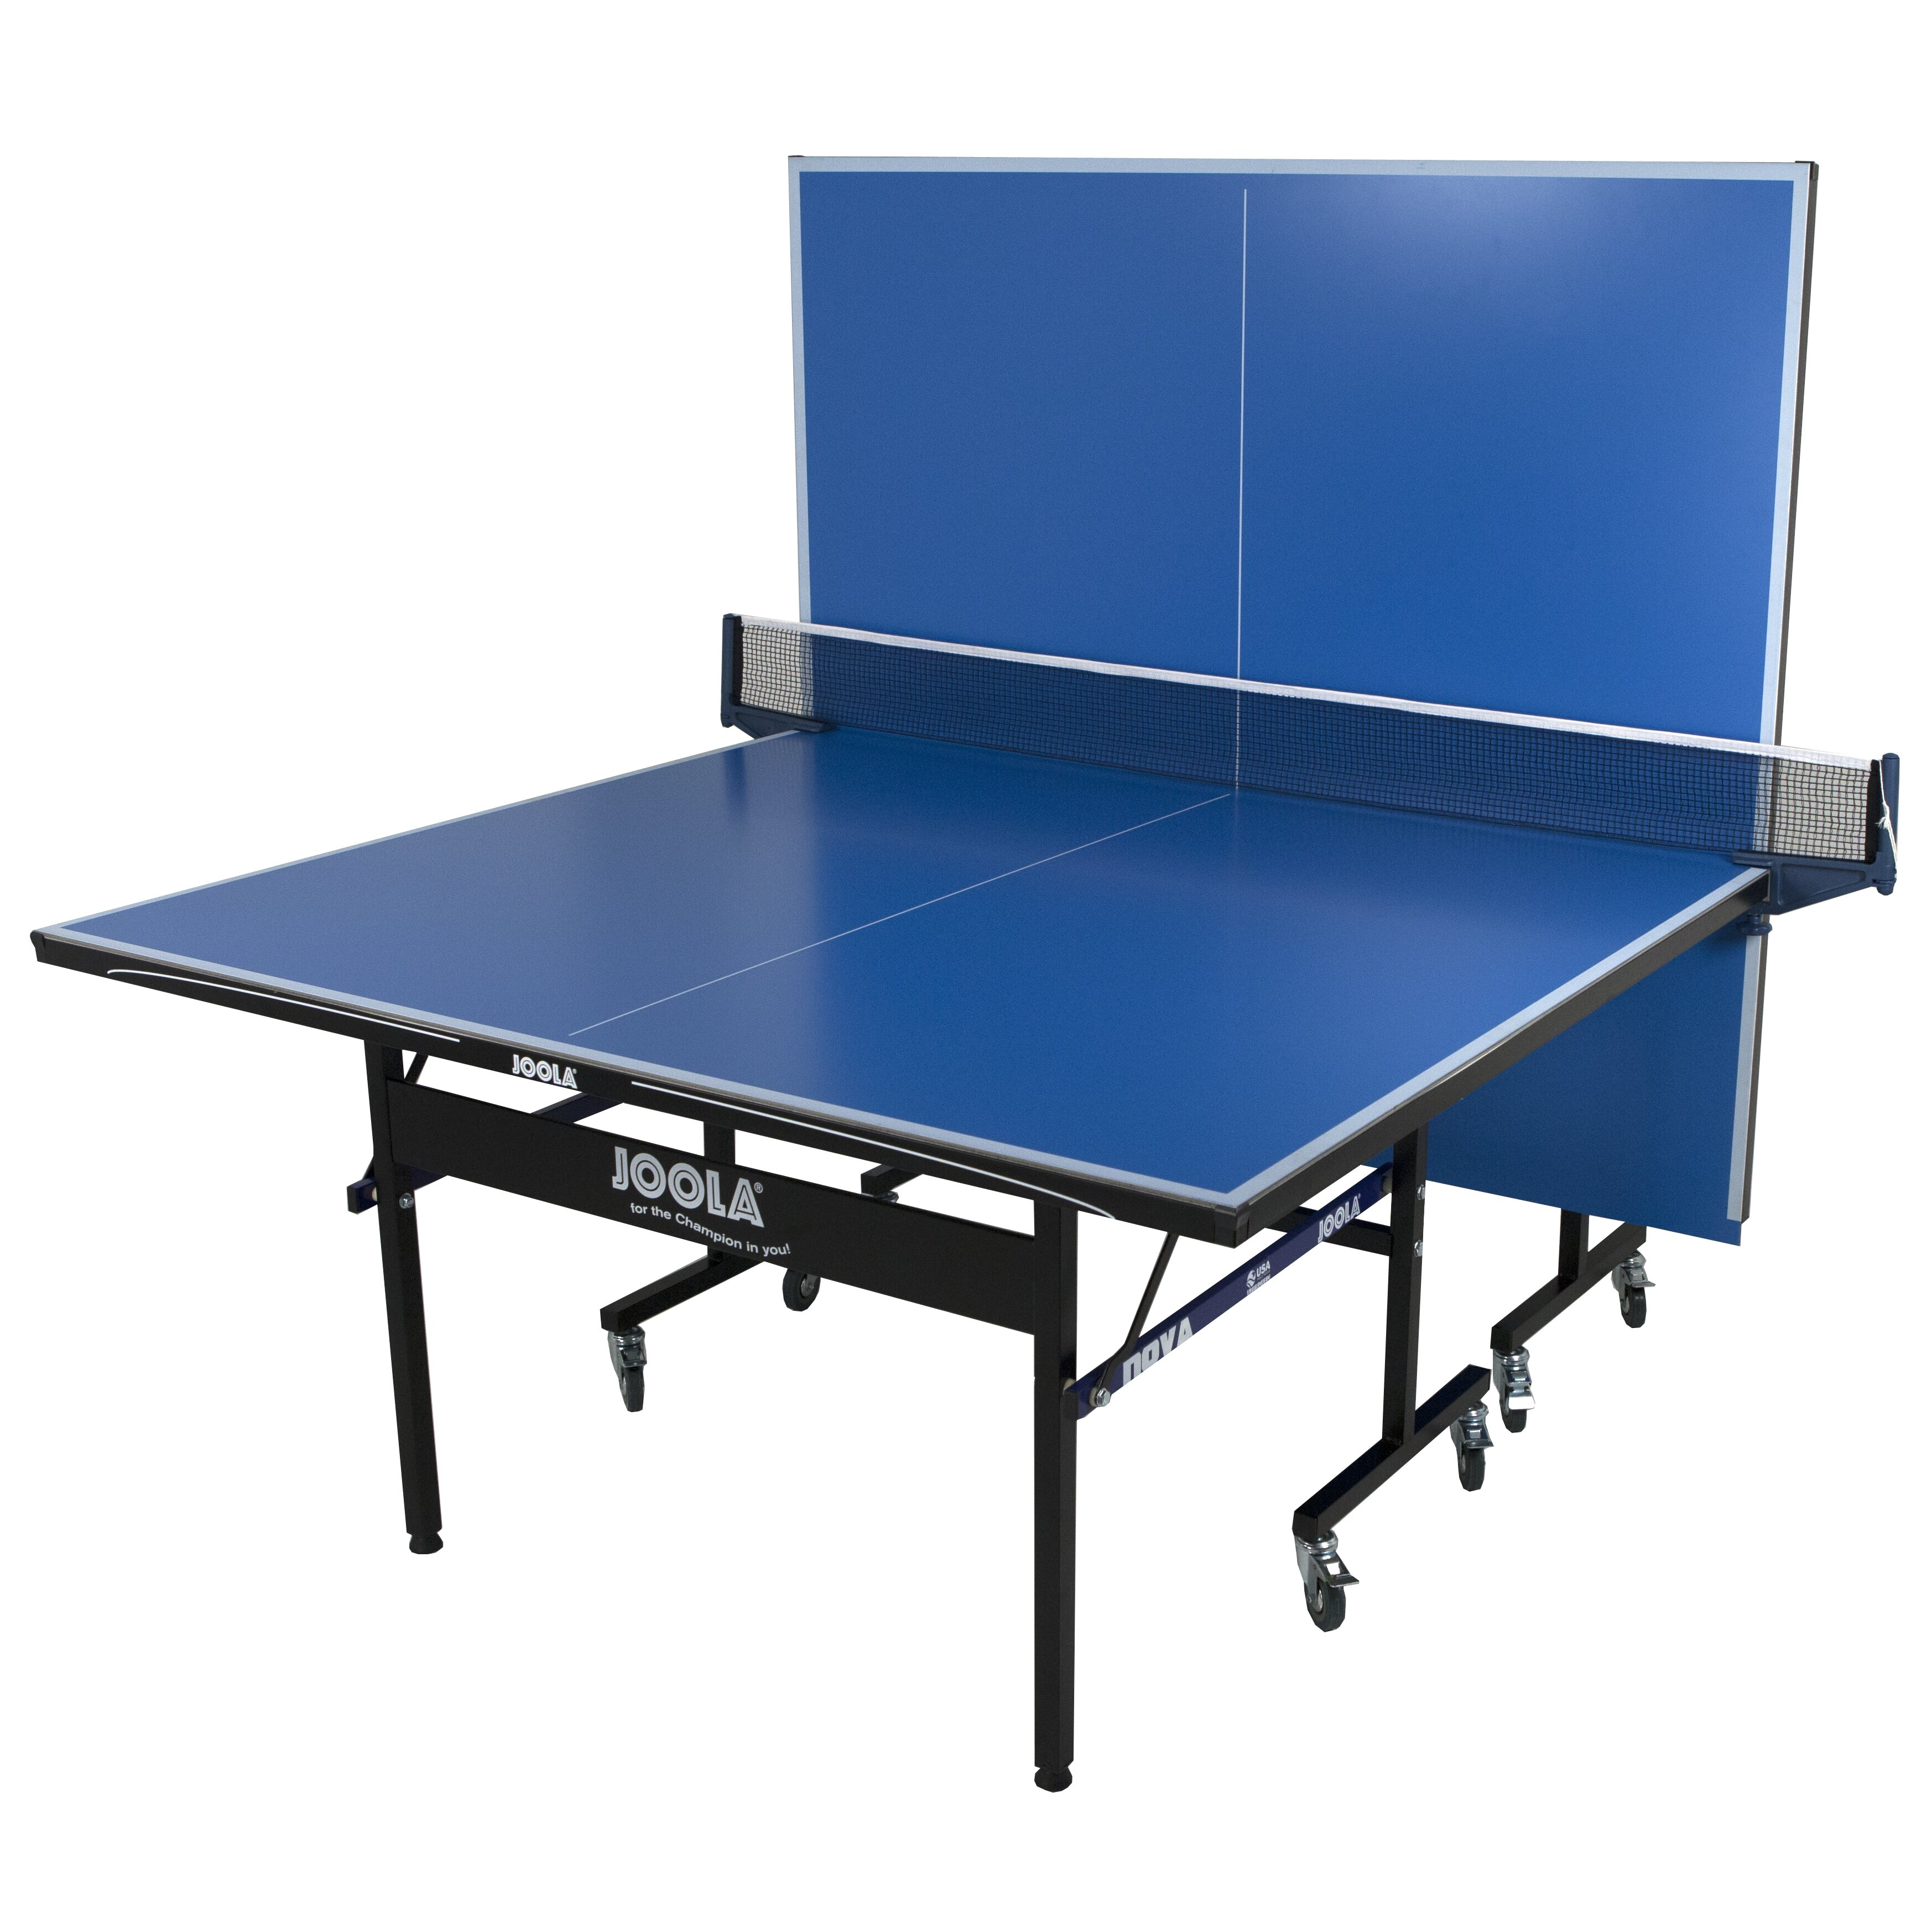 Joola Rapid Play Outdoor Table Tennis Table Amp Reviews